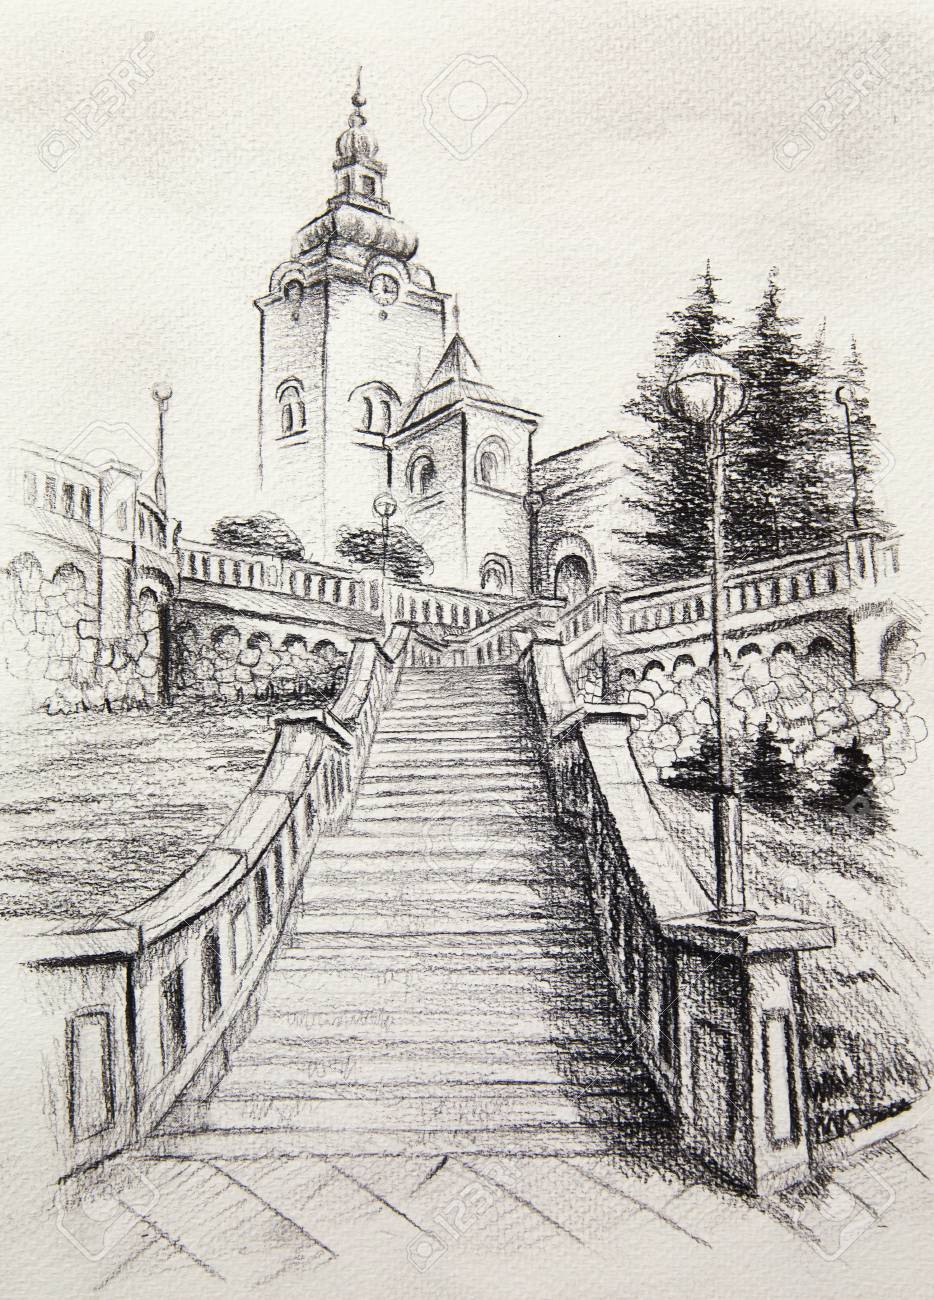 Church dominant in the old town pencil drawing on paper stock photo 70536924